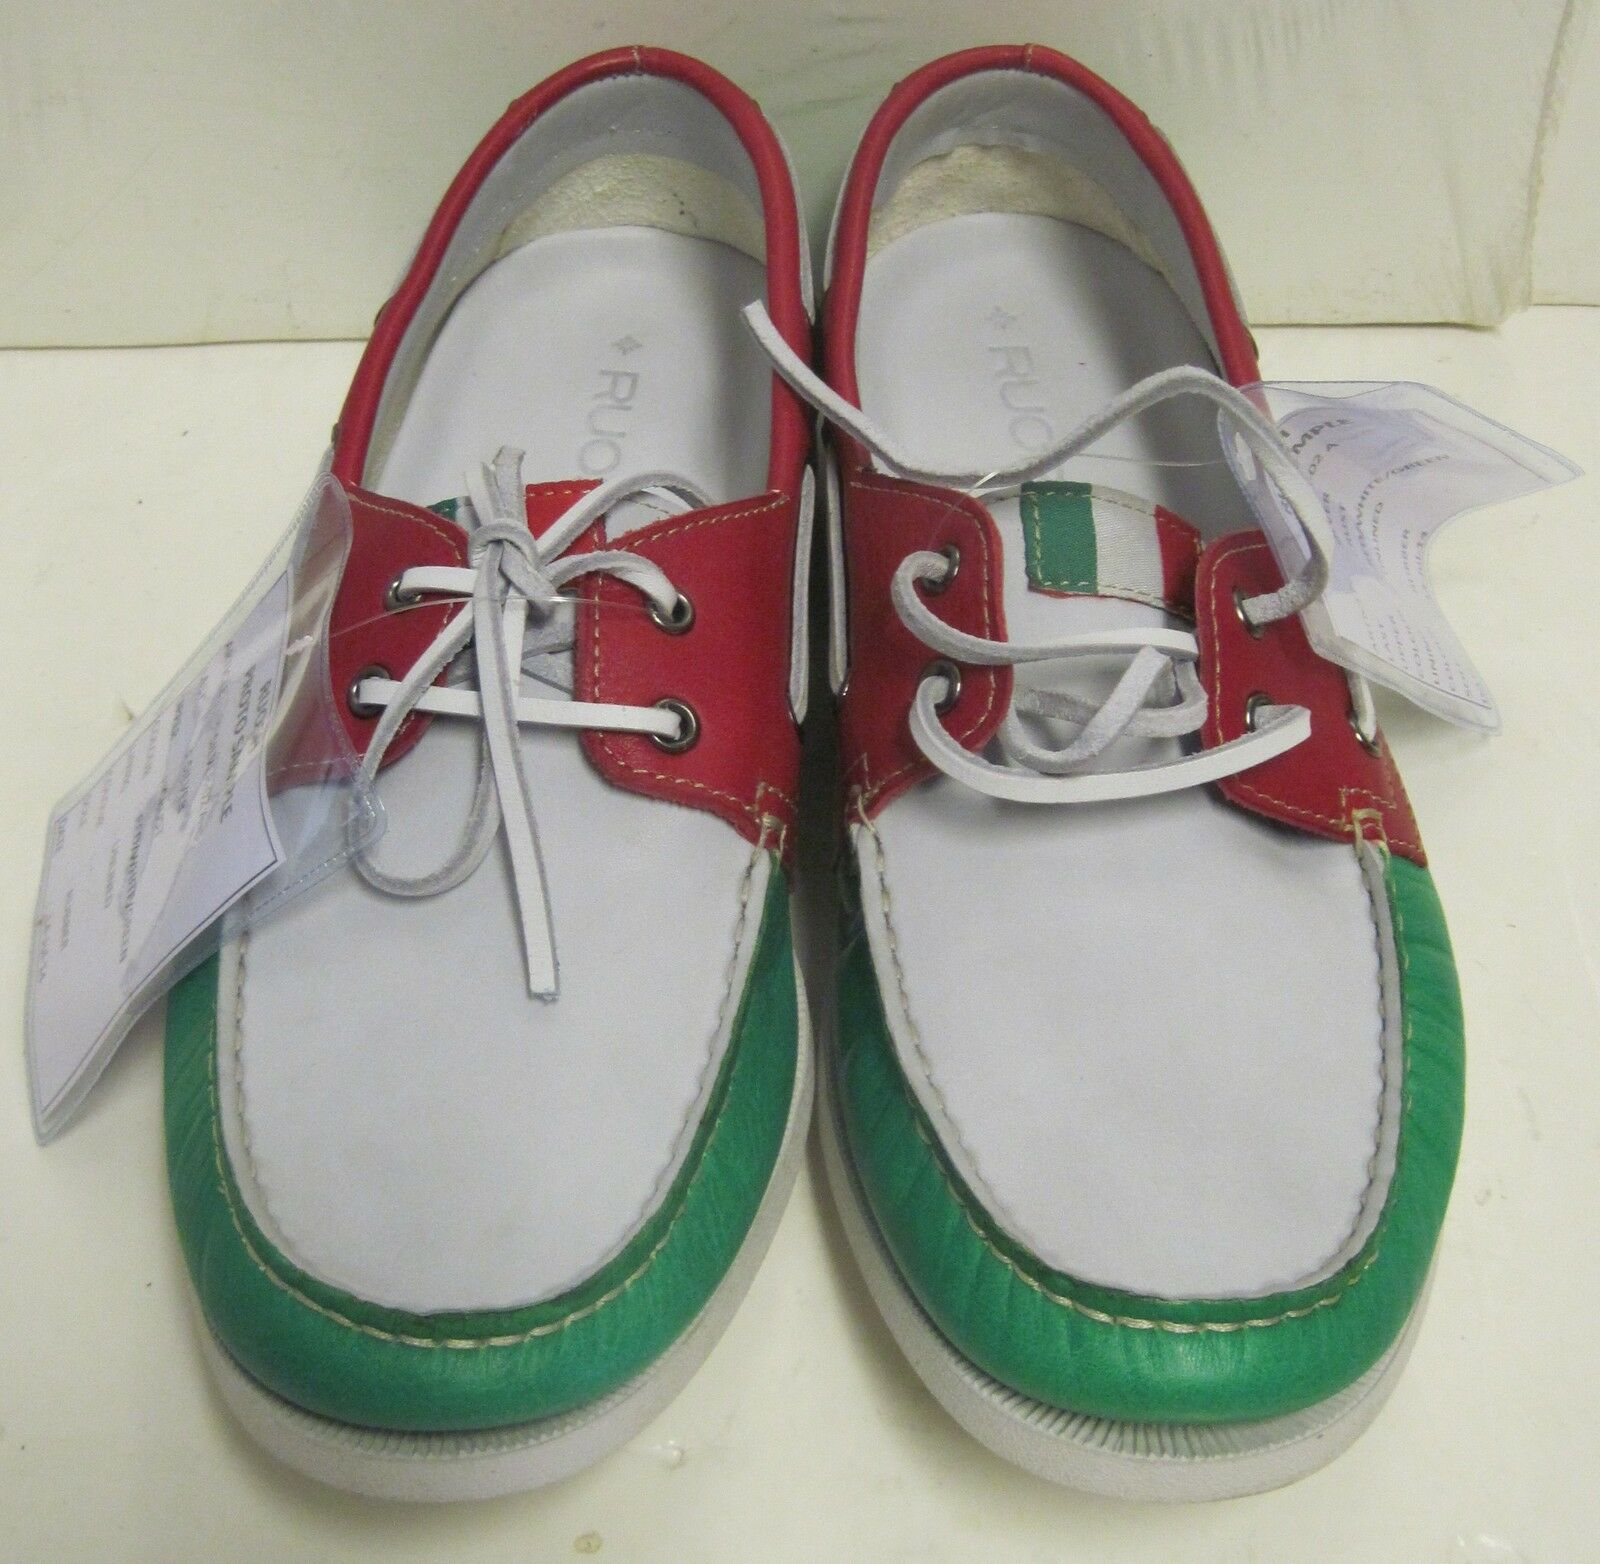 online store 0c109 c1da7 ... Ruosh Deck Prototype Pelle Deck Ruosh Shoes Size 8.5-9 Red White Green  W Italian Flag New ...